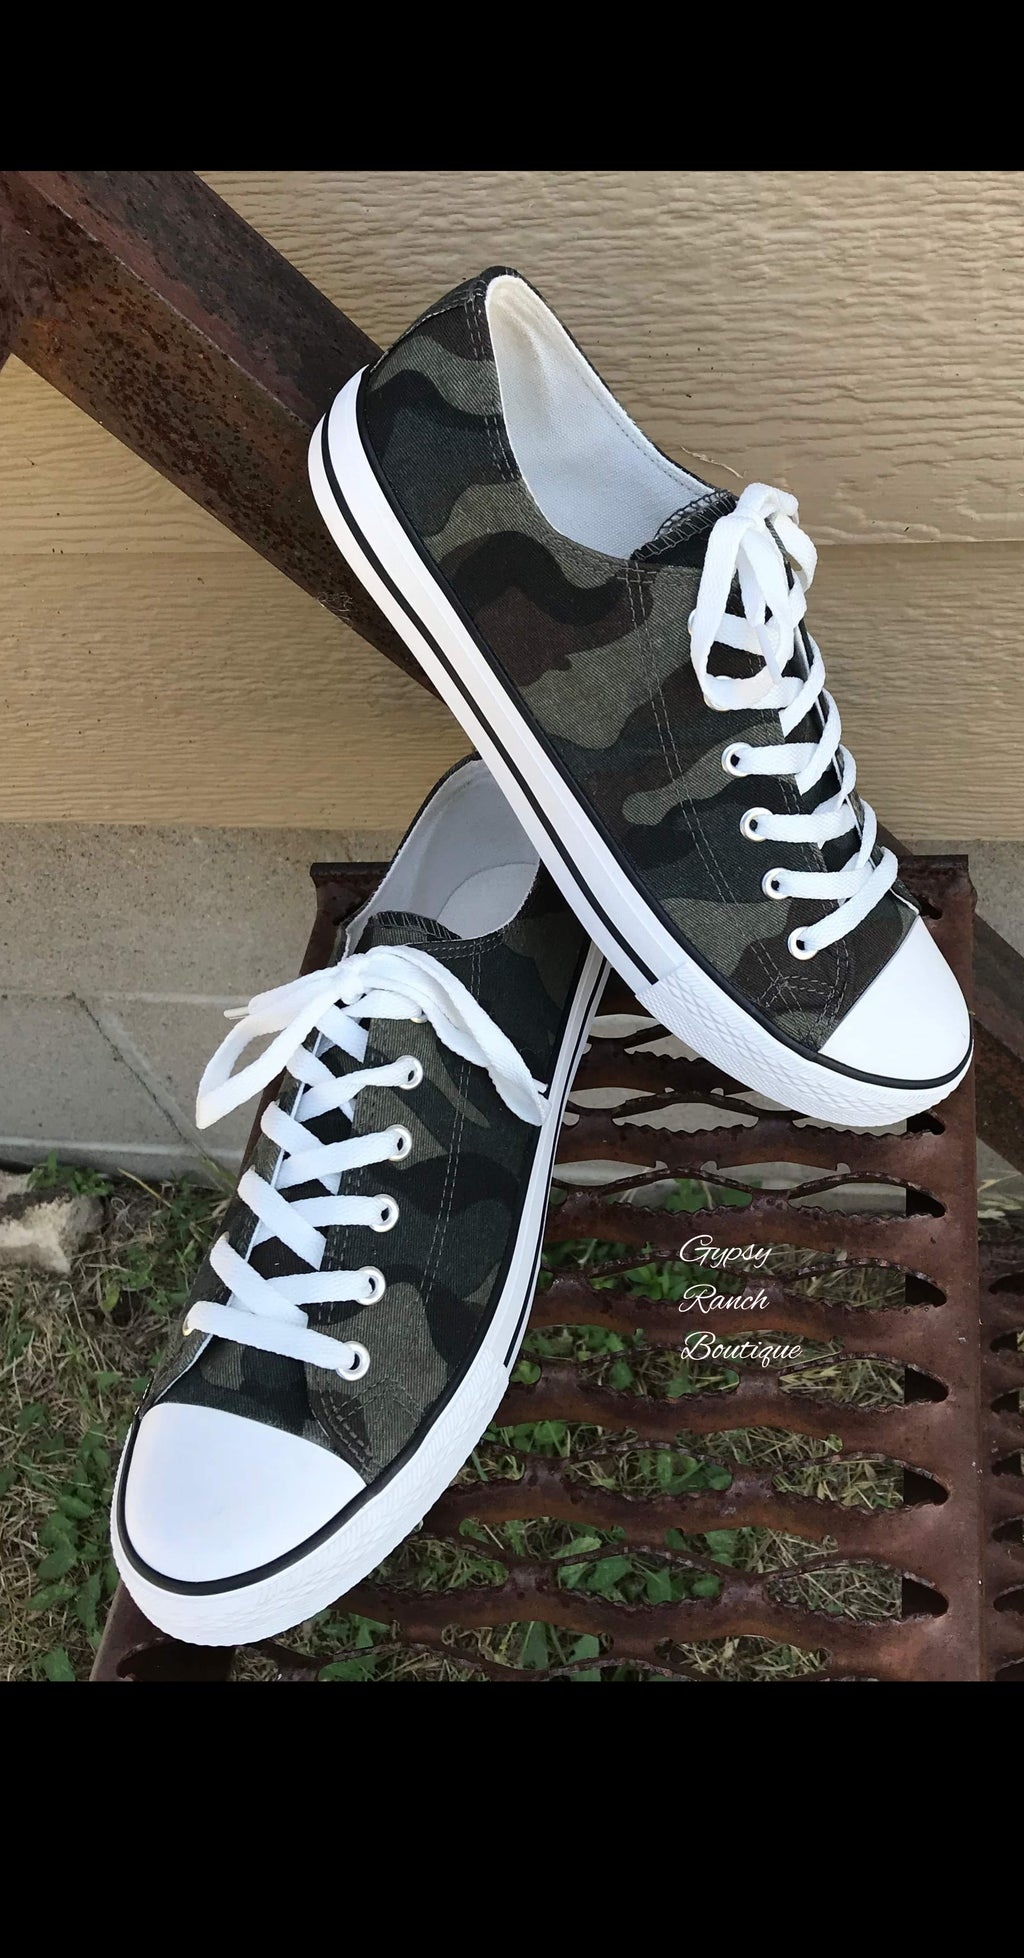 Cambridge Camo Shoes